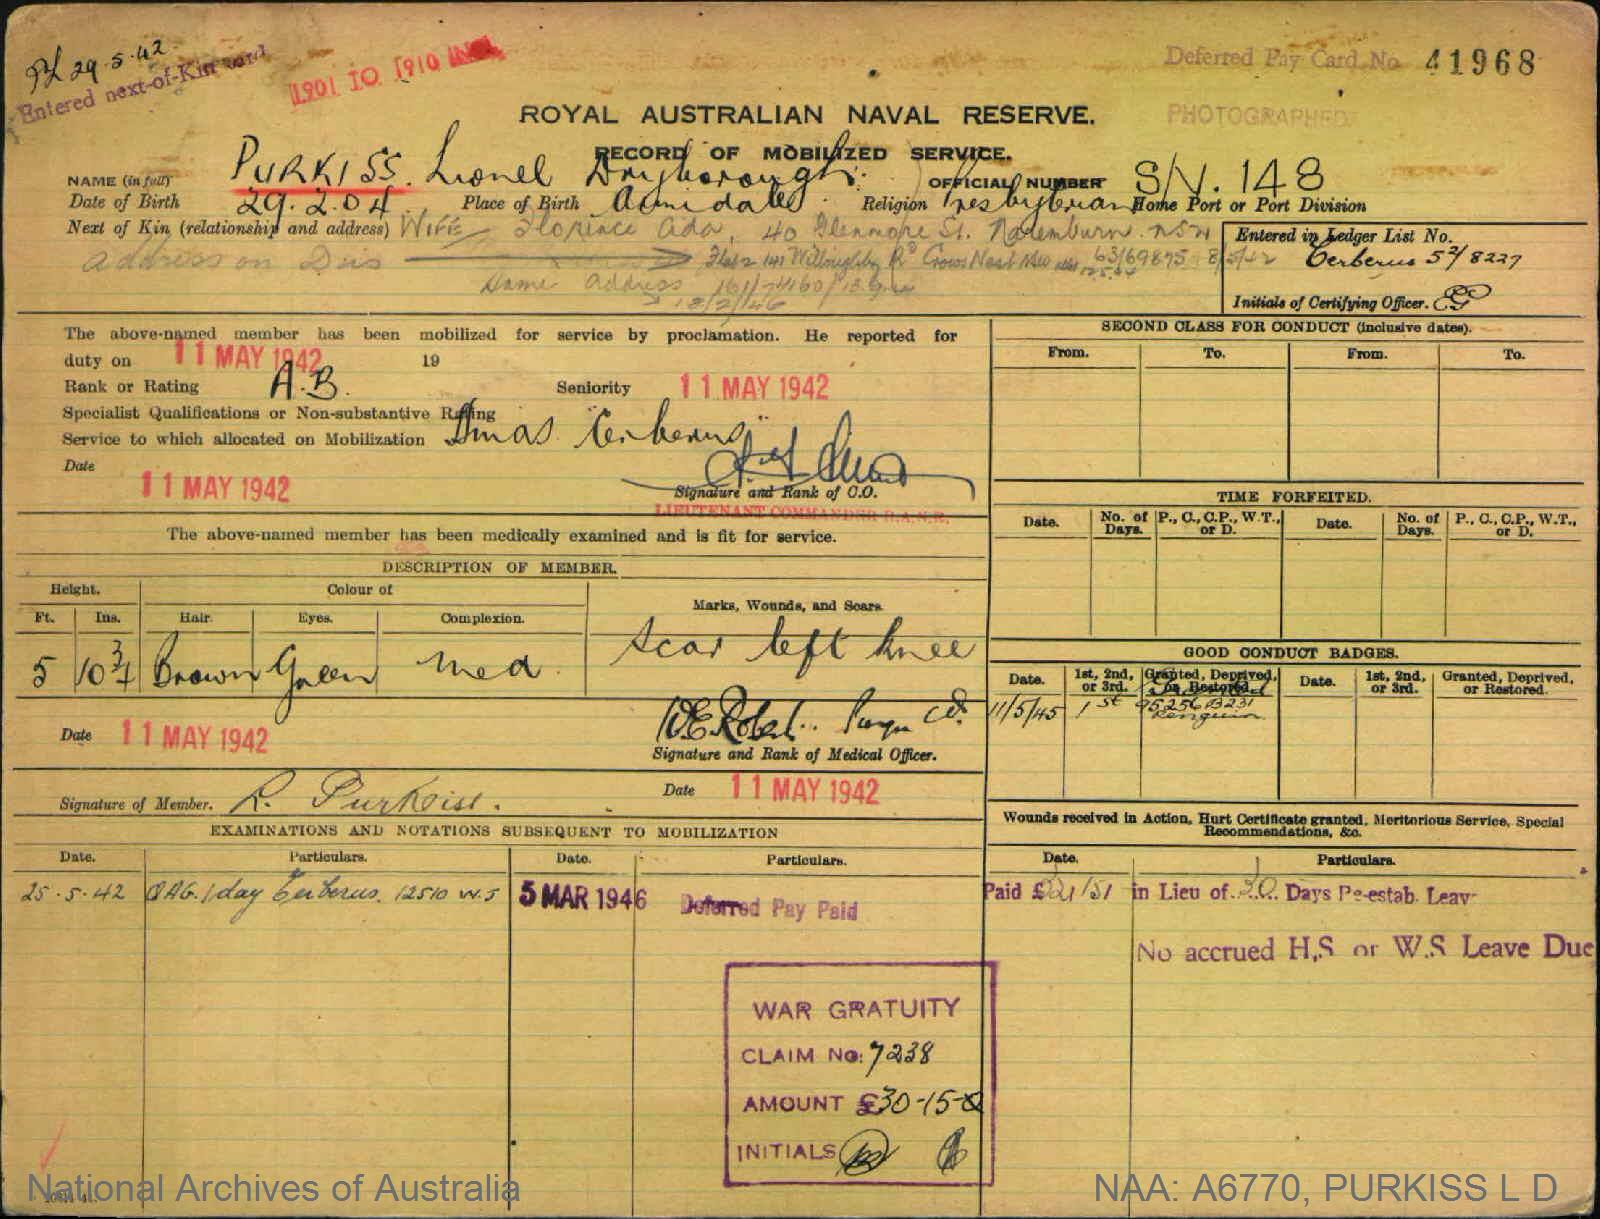 PURKISS LIONEL DRYBOROUGH : Service Number - S/V148 : Date of birth - 29 Feb 1904 : Place of birth - ARMIDALE : Place of enlistment - Unknown : Next of Kin - FLORENCE